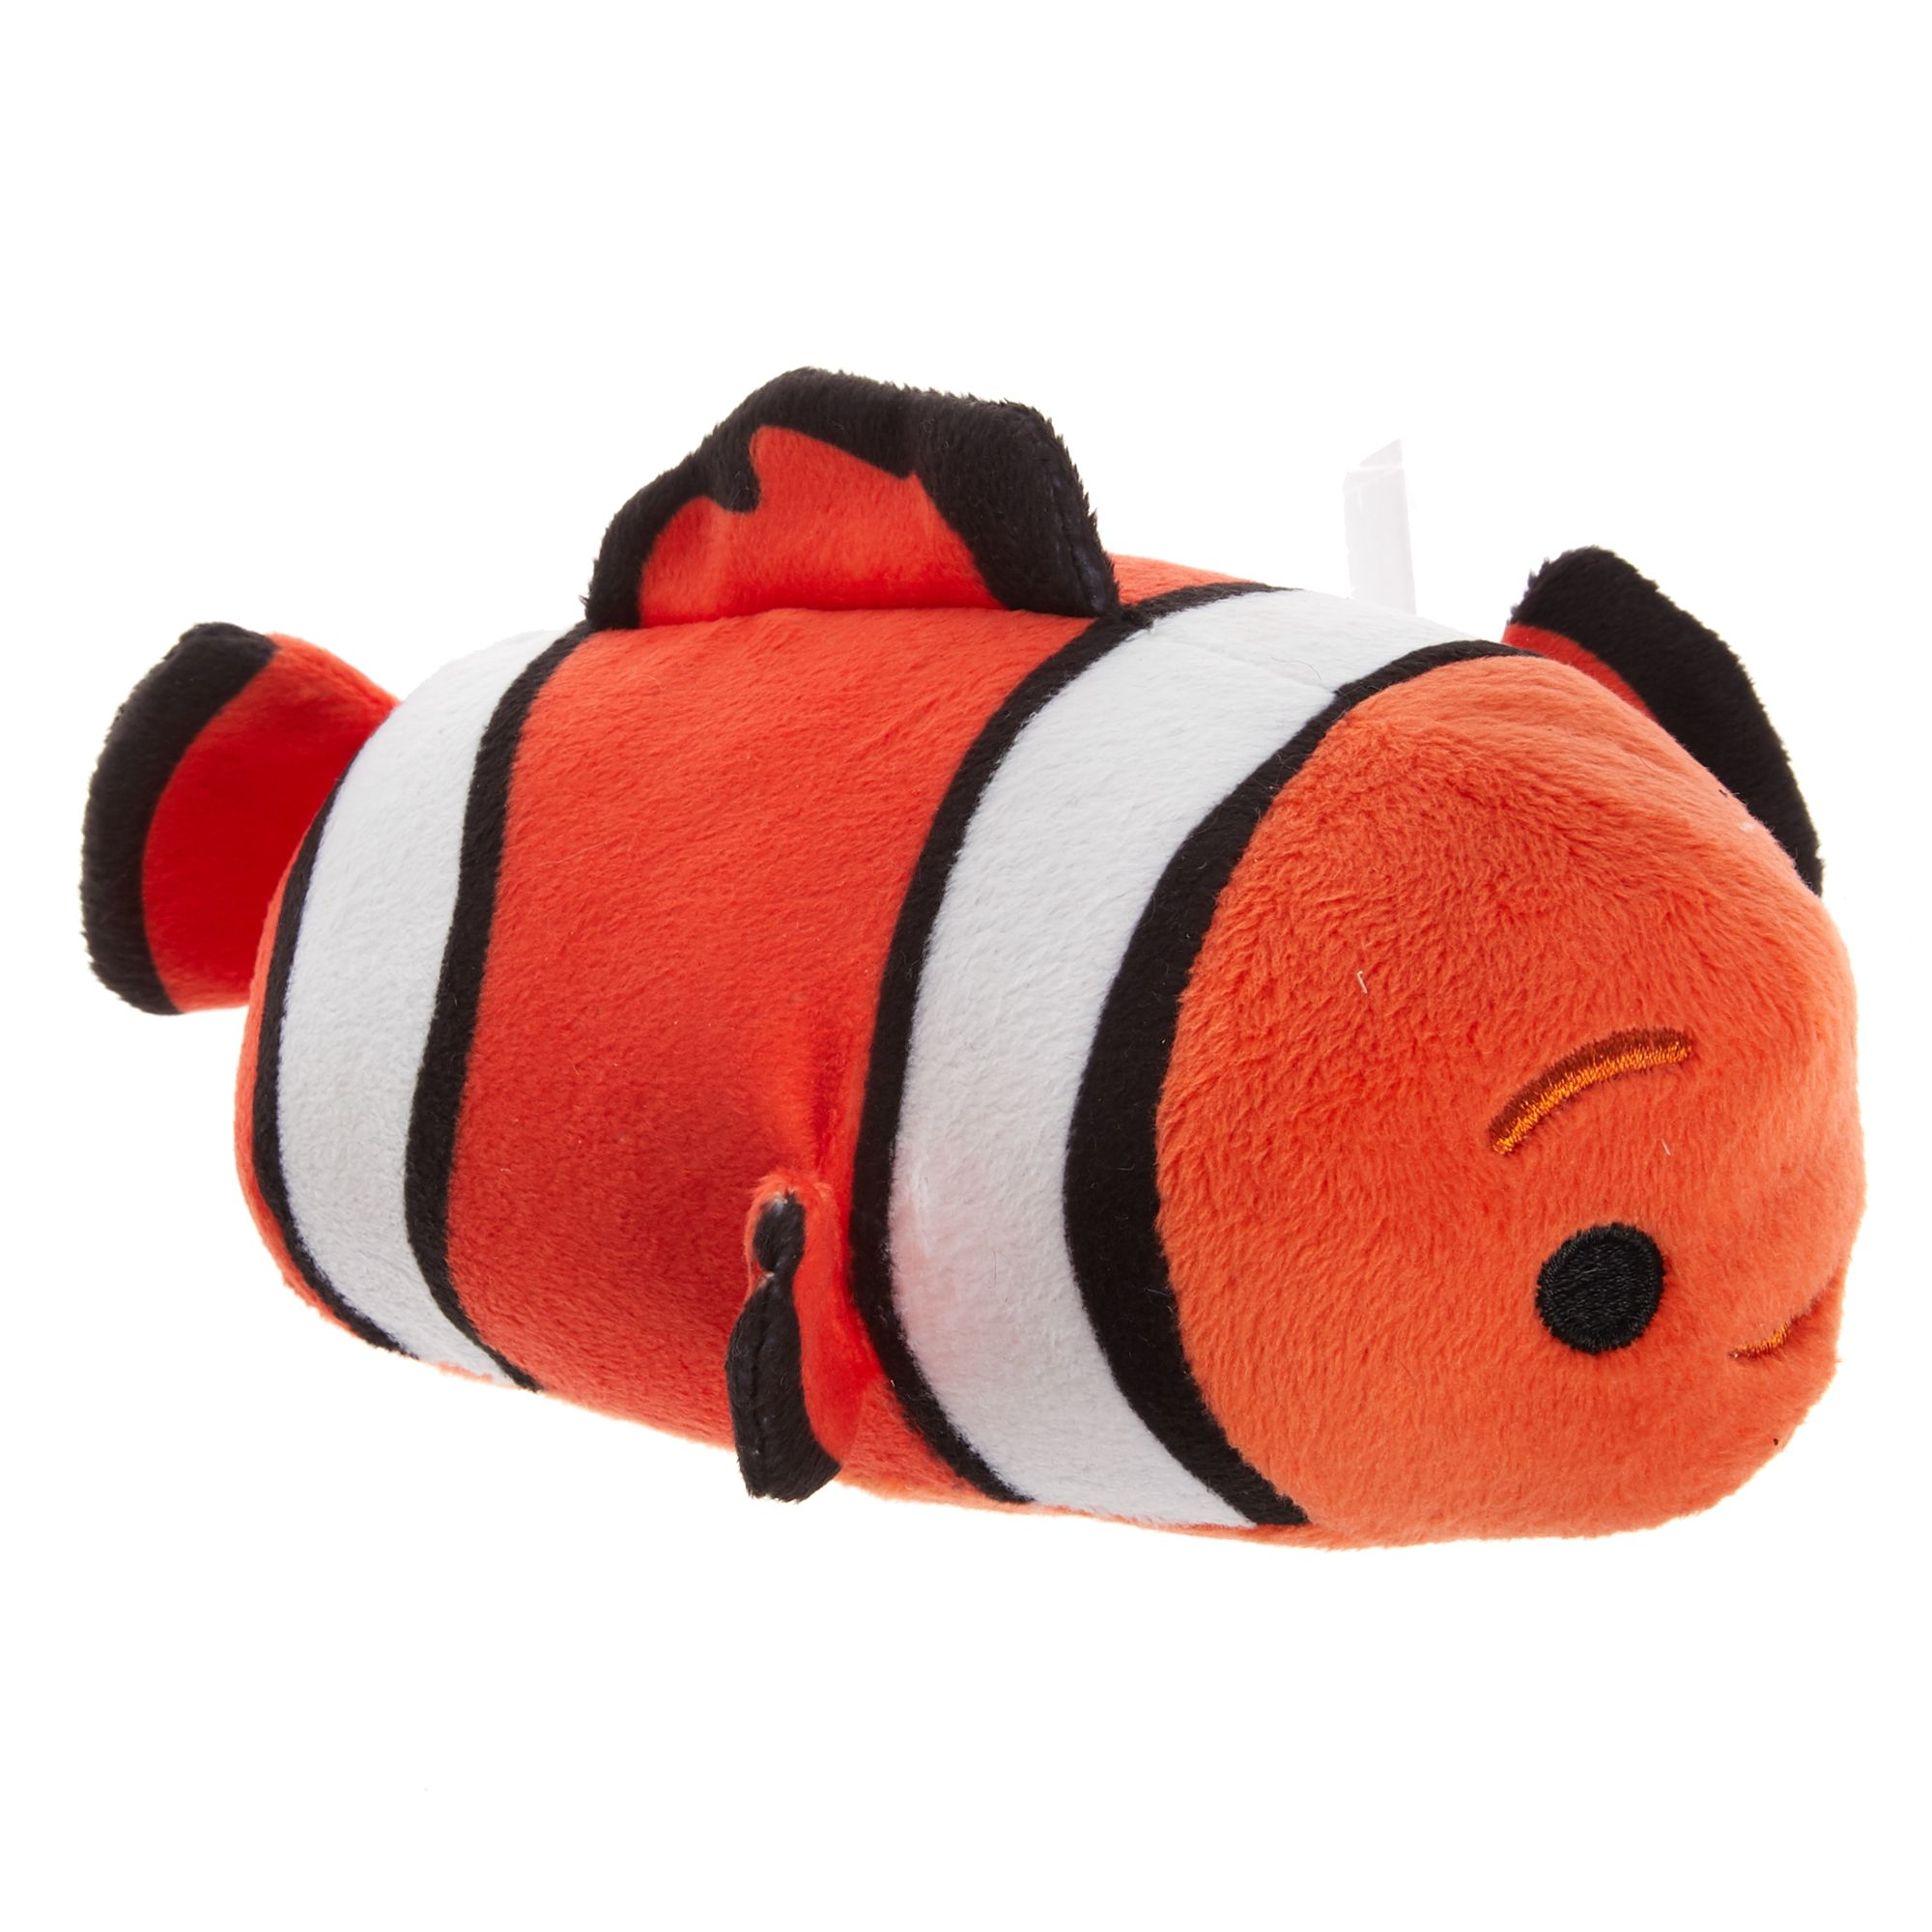 "Disney Nemo ""Tsum Tsum"" Dog Toy - Plush, Squeaker size: Small 5274207"